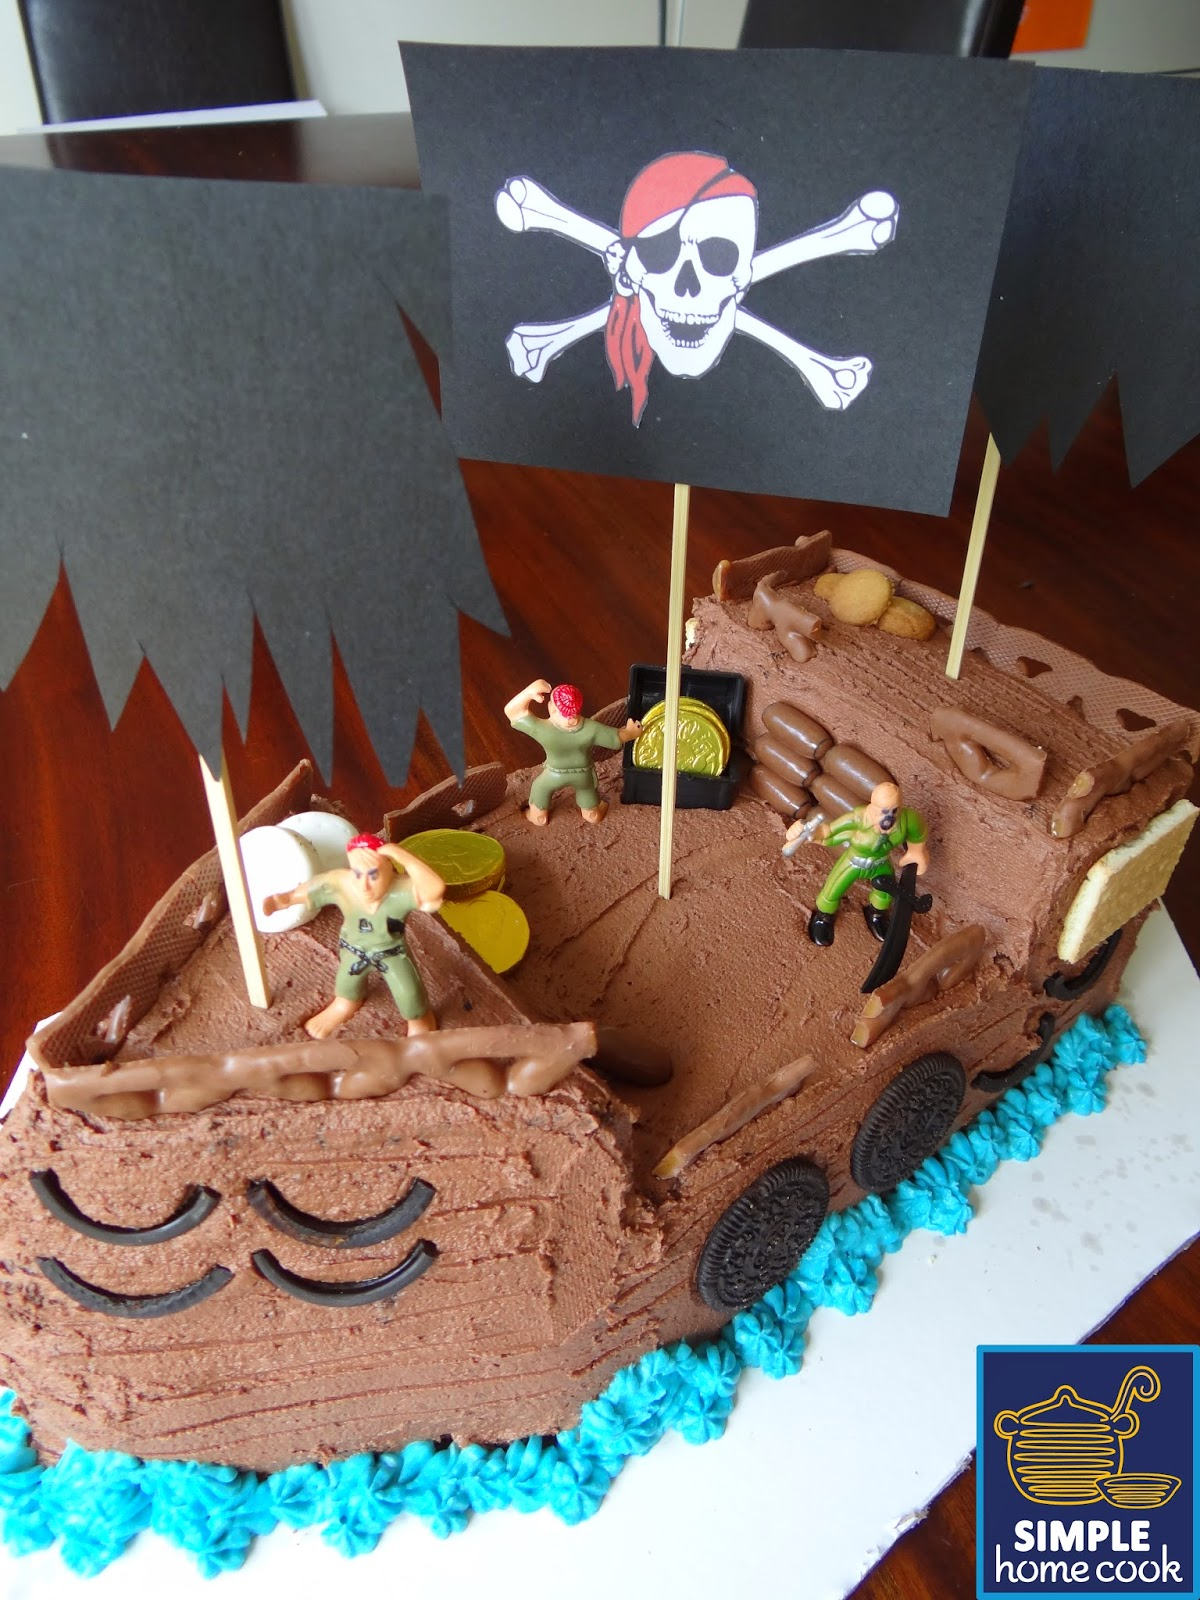 Simple home cook How to decorate a pirate ship cake